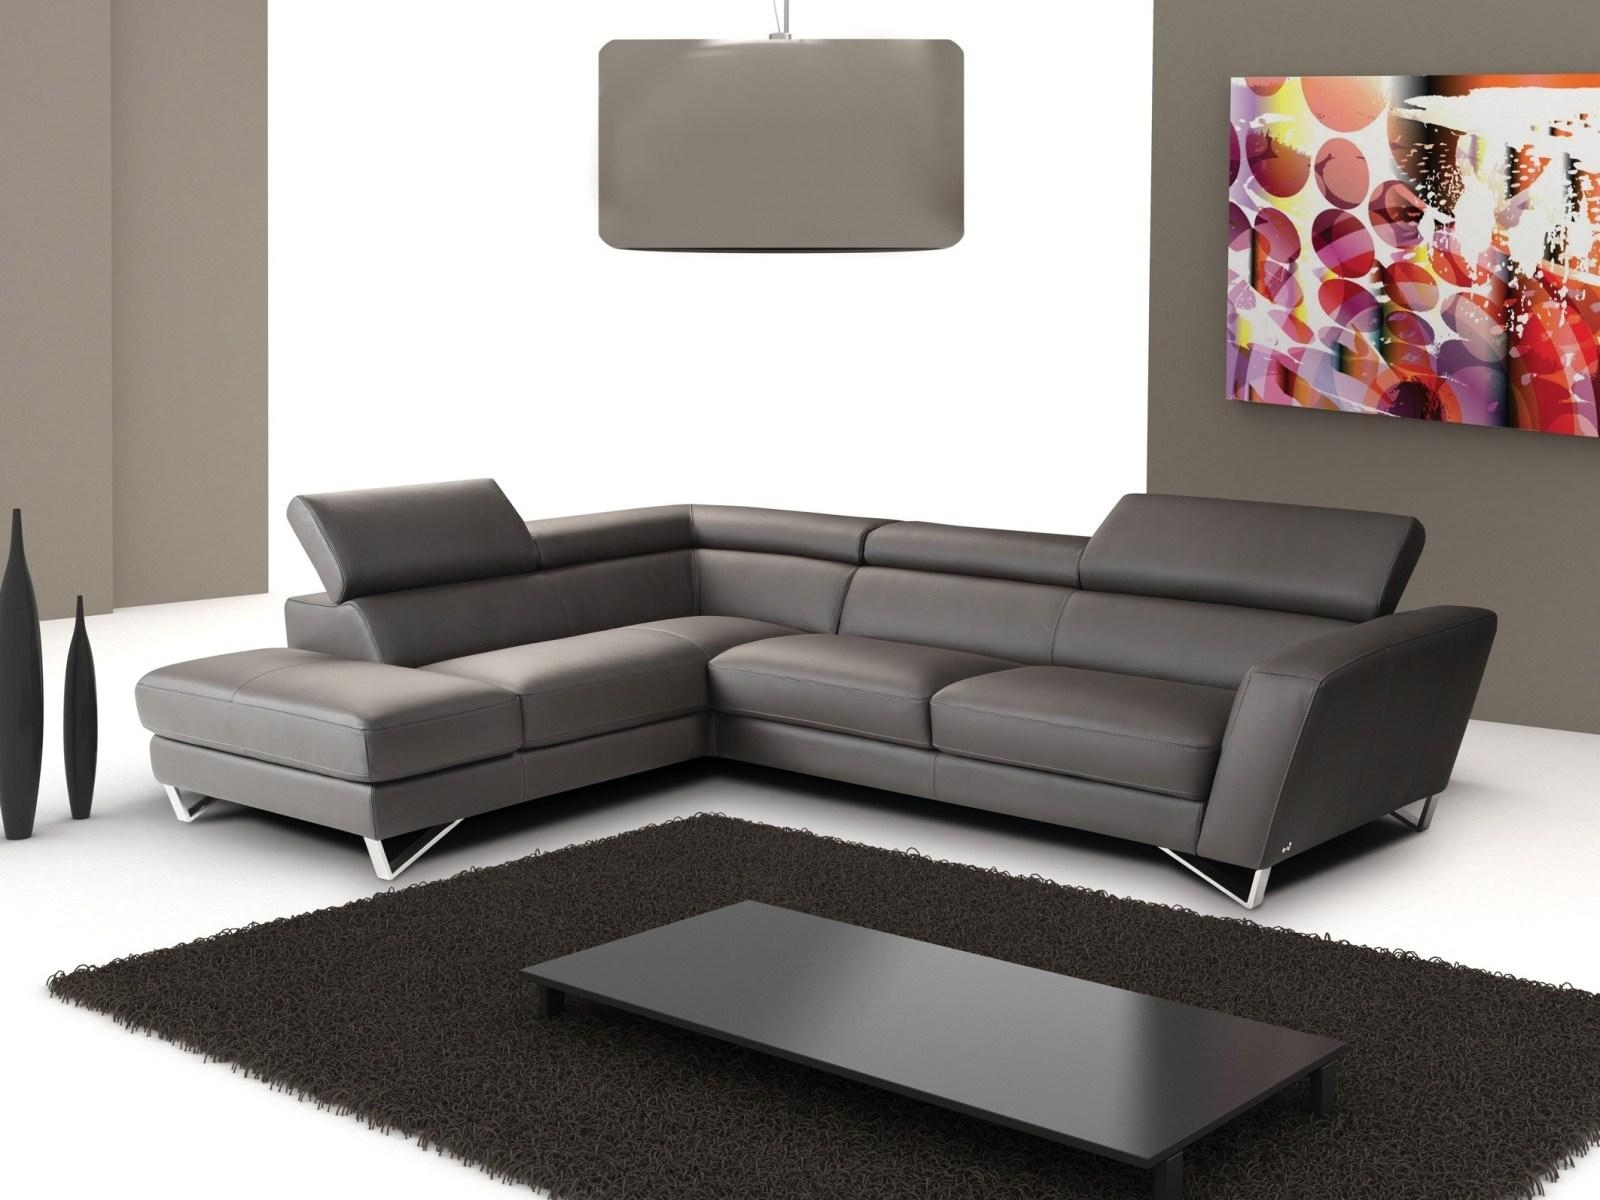 Sofas Center : Small Size Sofa Trend For Your Sofas And Couches With Regard To Sofa Trend (View 7 of 20)